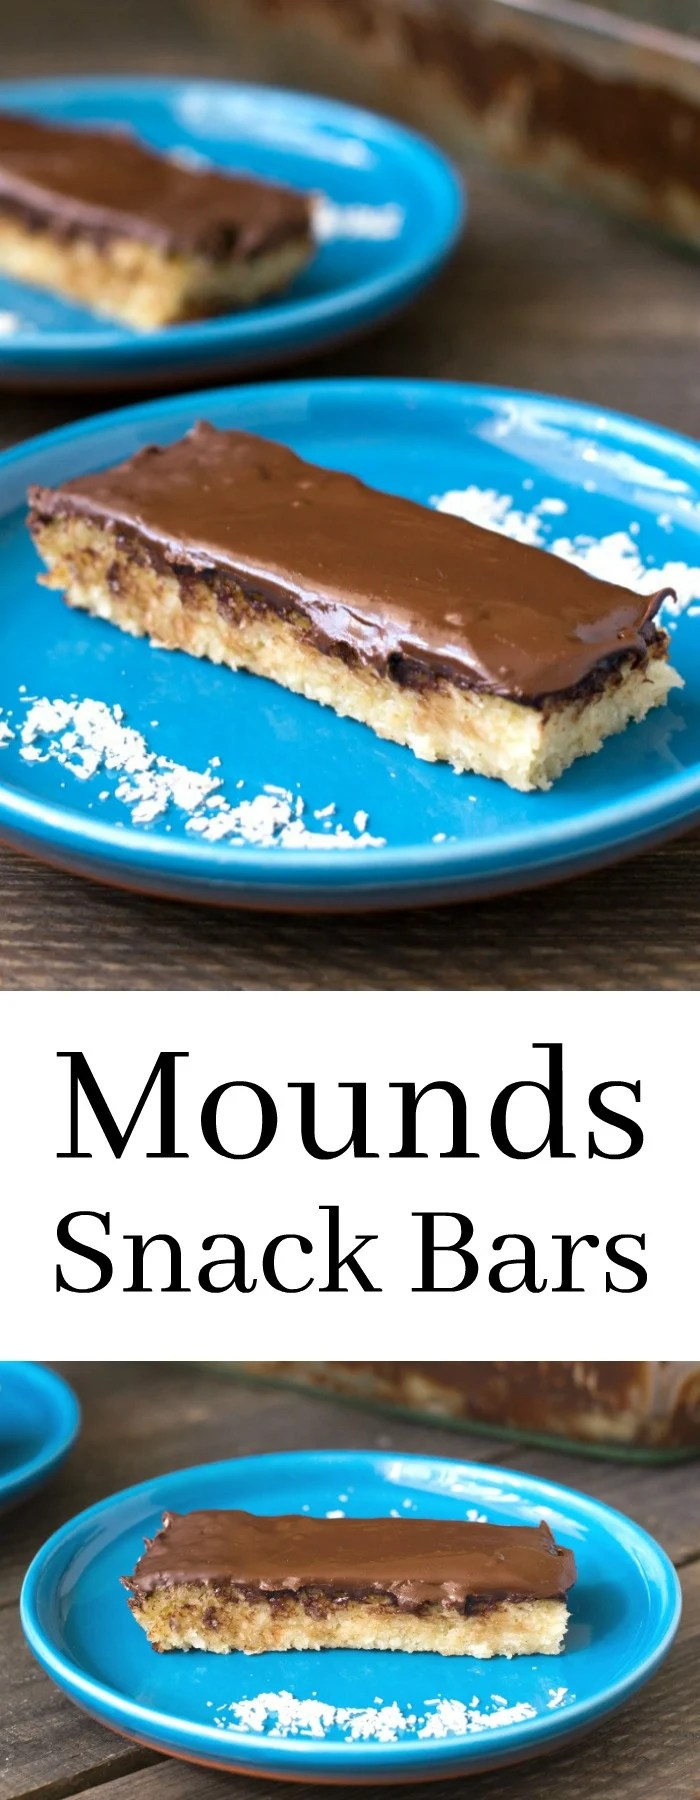 These homemade Mounds bars are a healthier dessert that will satisfy your sweet tooth. This gluten-free, dairy-free recipe tastes like the real thing! Recipe from realfoodrealdeals.com